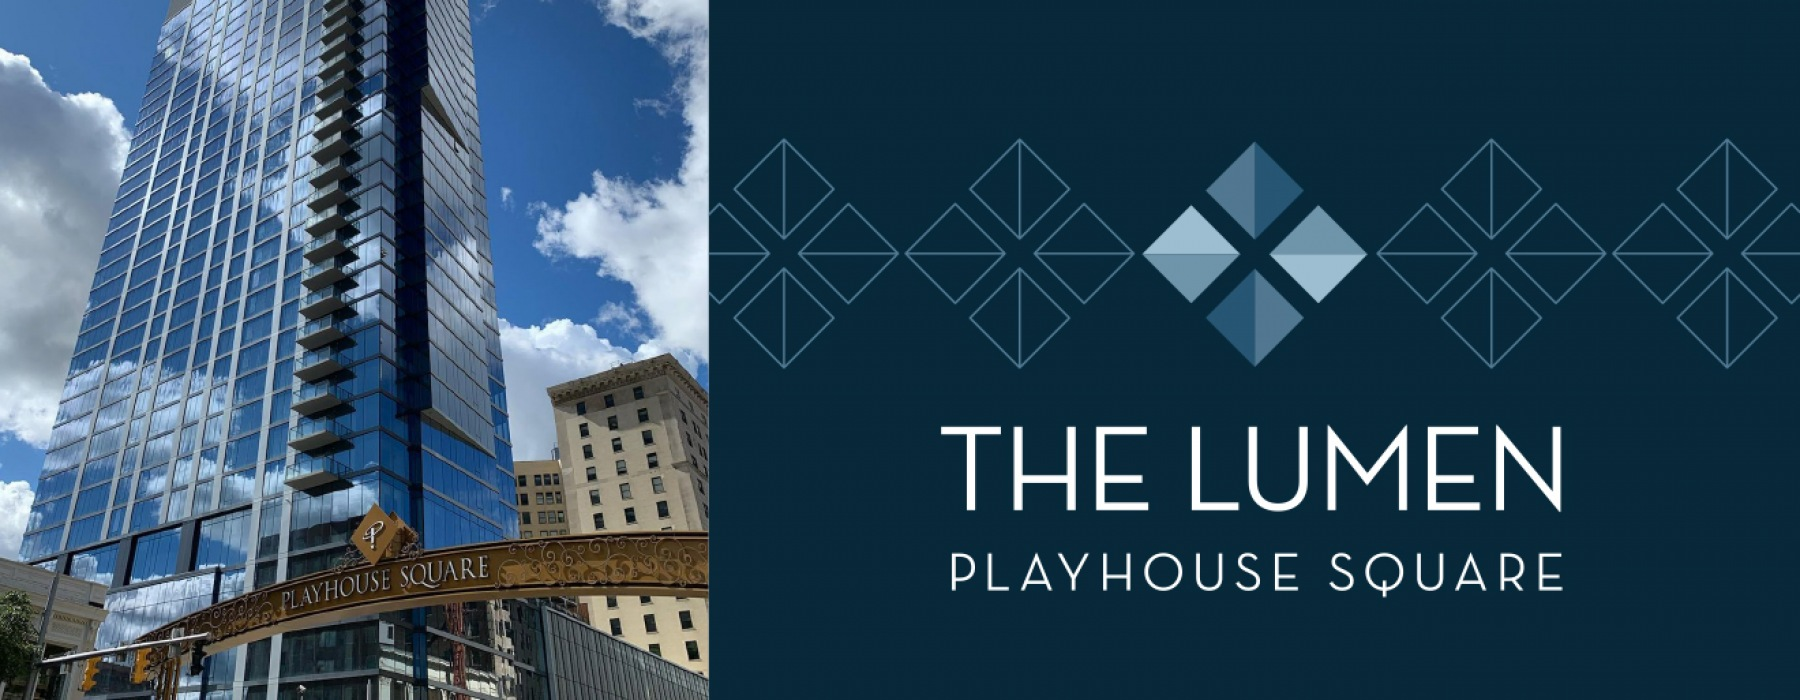 The Lumen at Playhouse Square